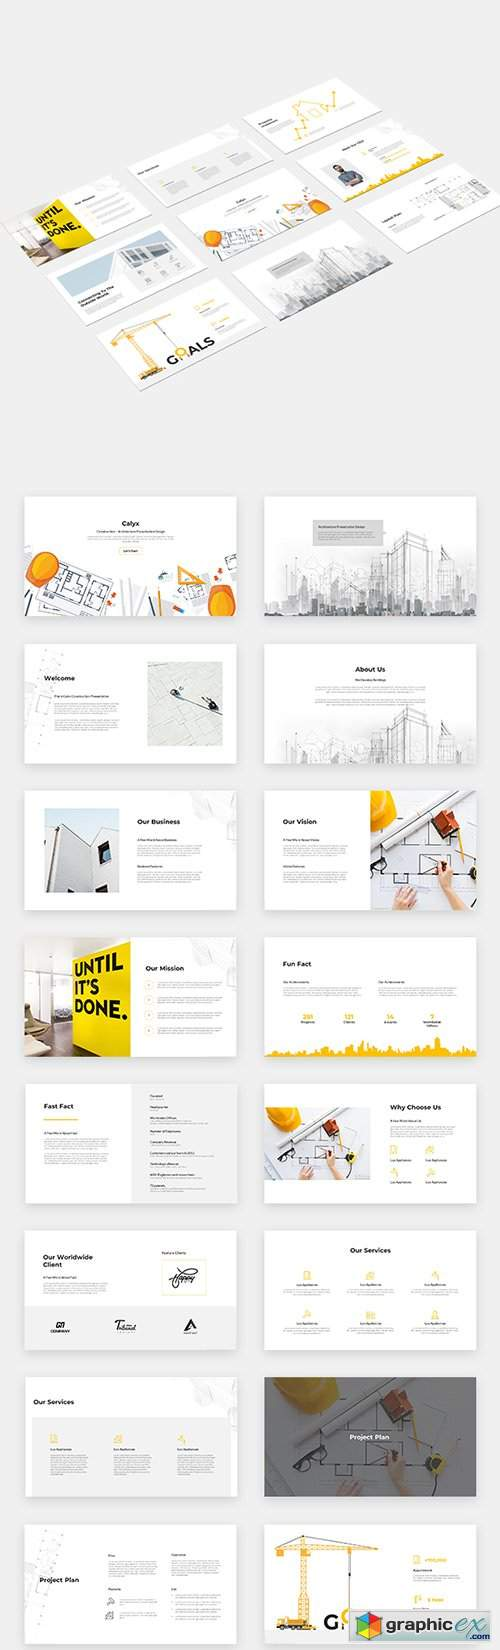 Calyx Google Slides Template